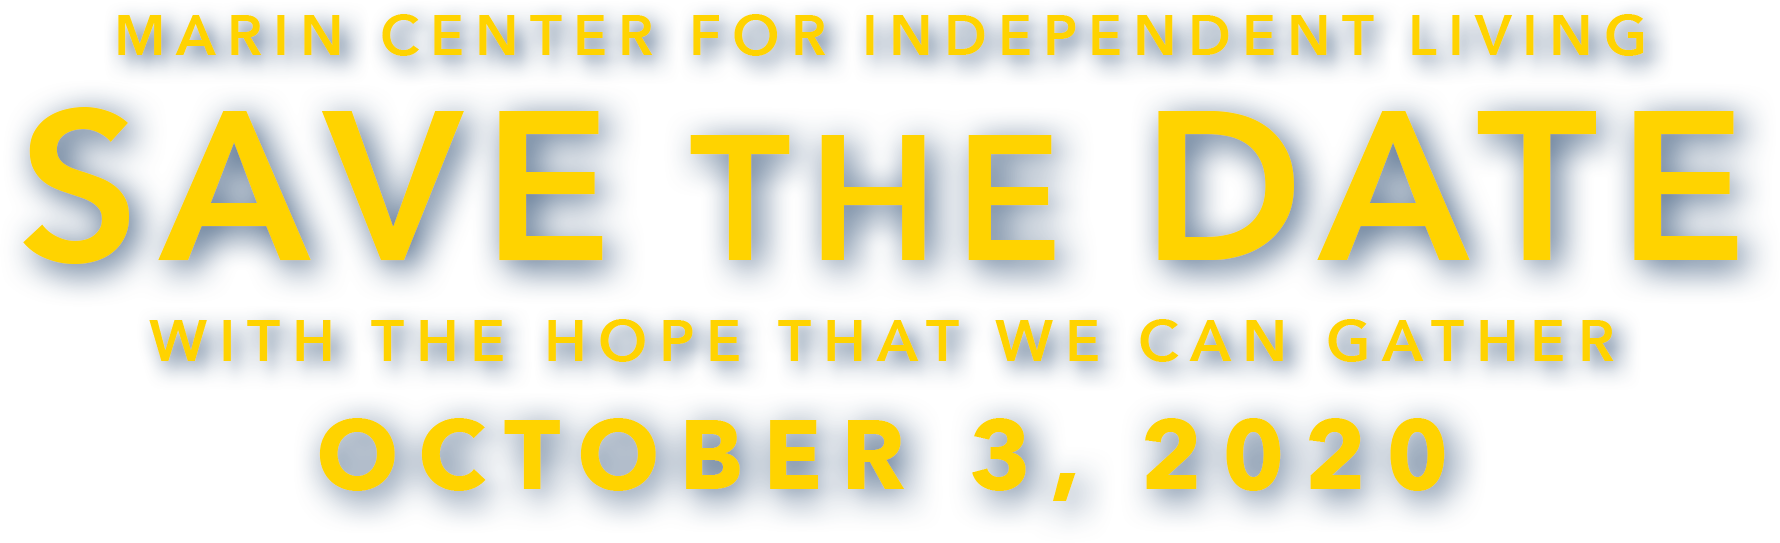 Marin Center for Independent Living: Save the Date – October 3, 2020. Angels by the Bay. With the hope that we can gather. Purchase Tickets Now.